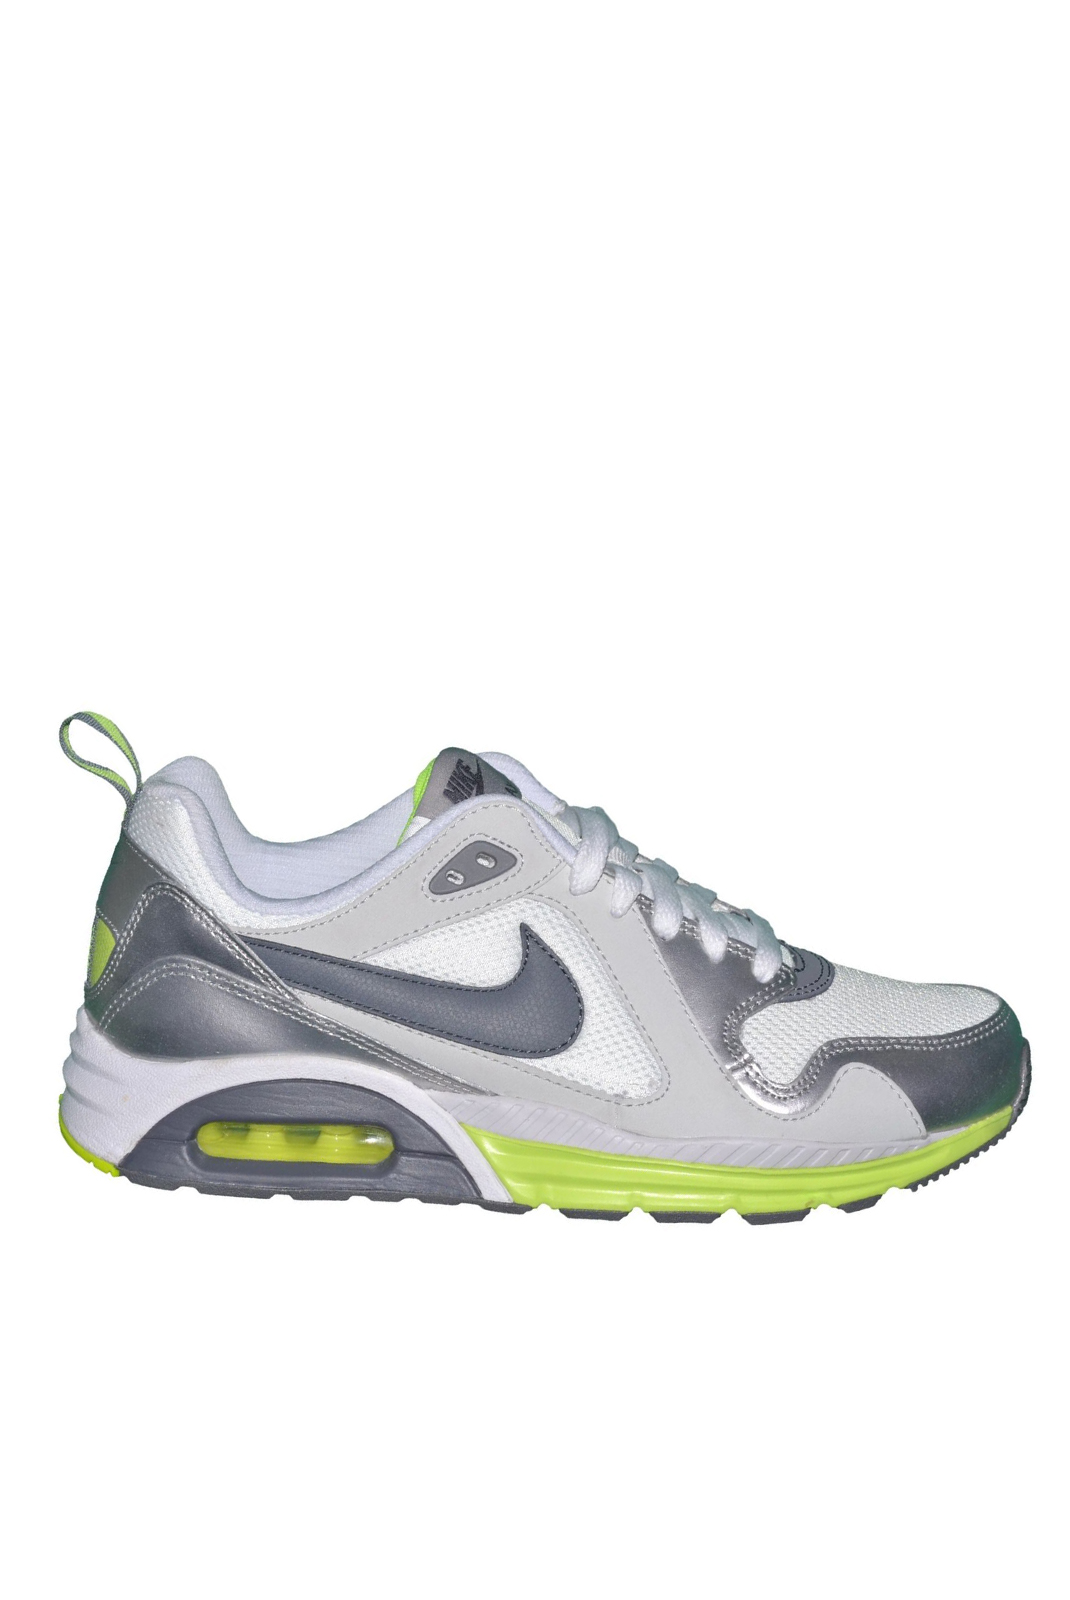 Chaussures  Nike WMNS AIR MAX TRAX 631763 100 BLANC ARGENT METAL